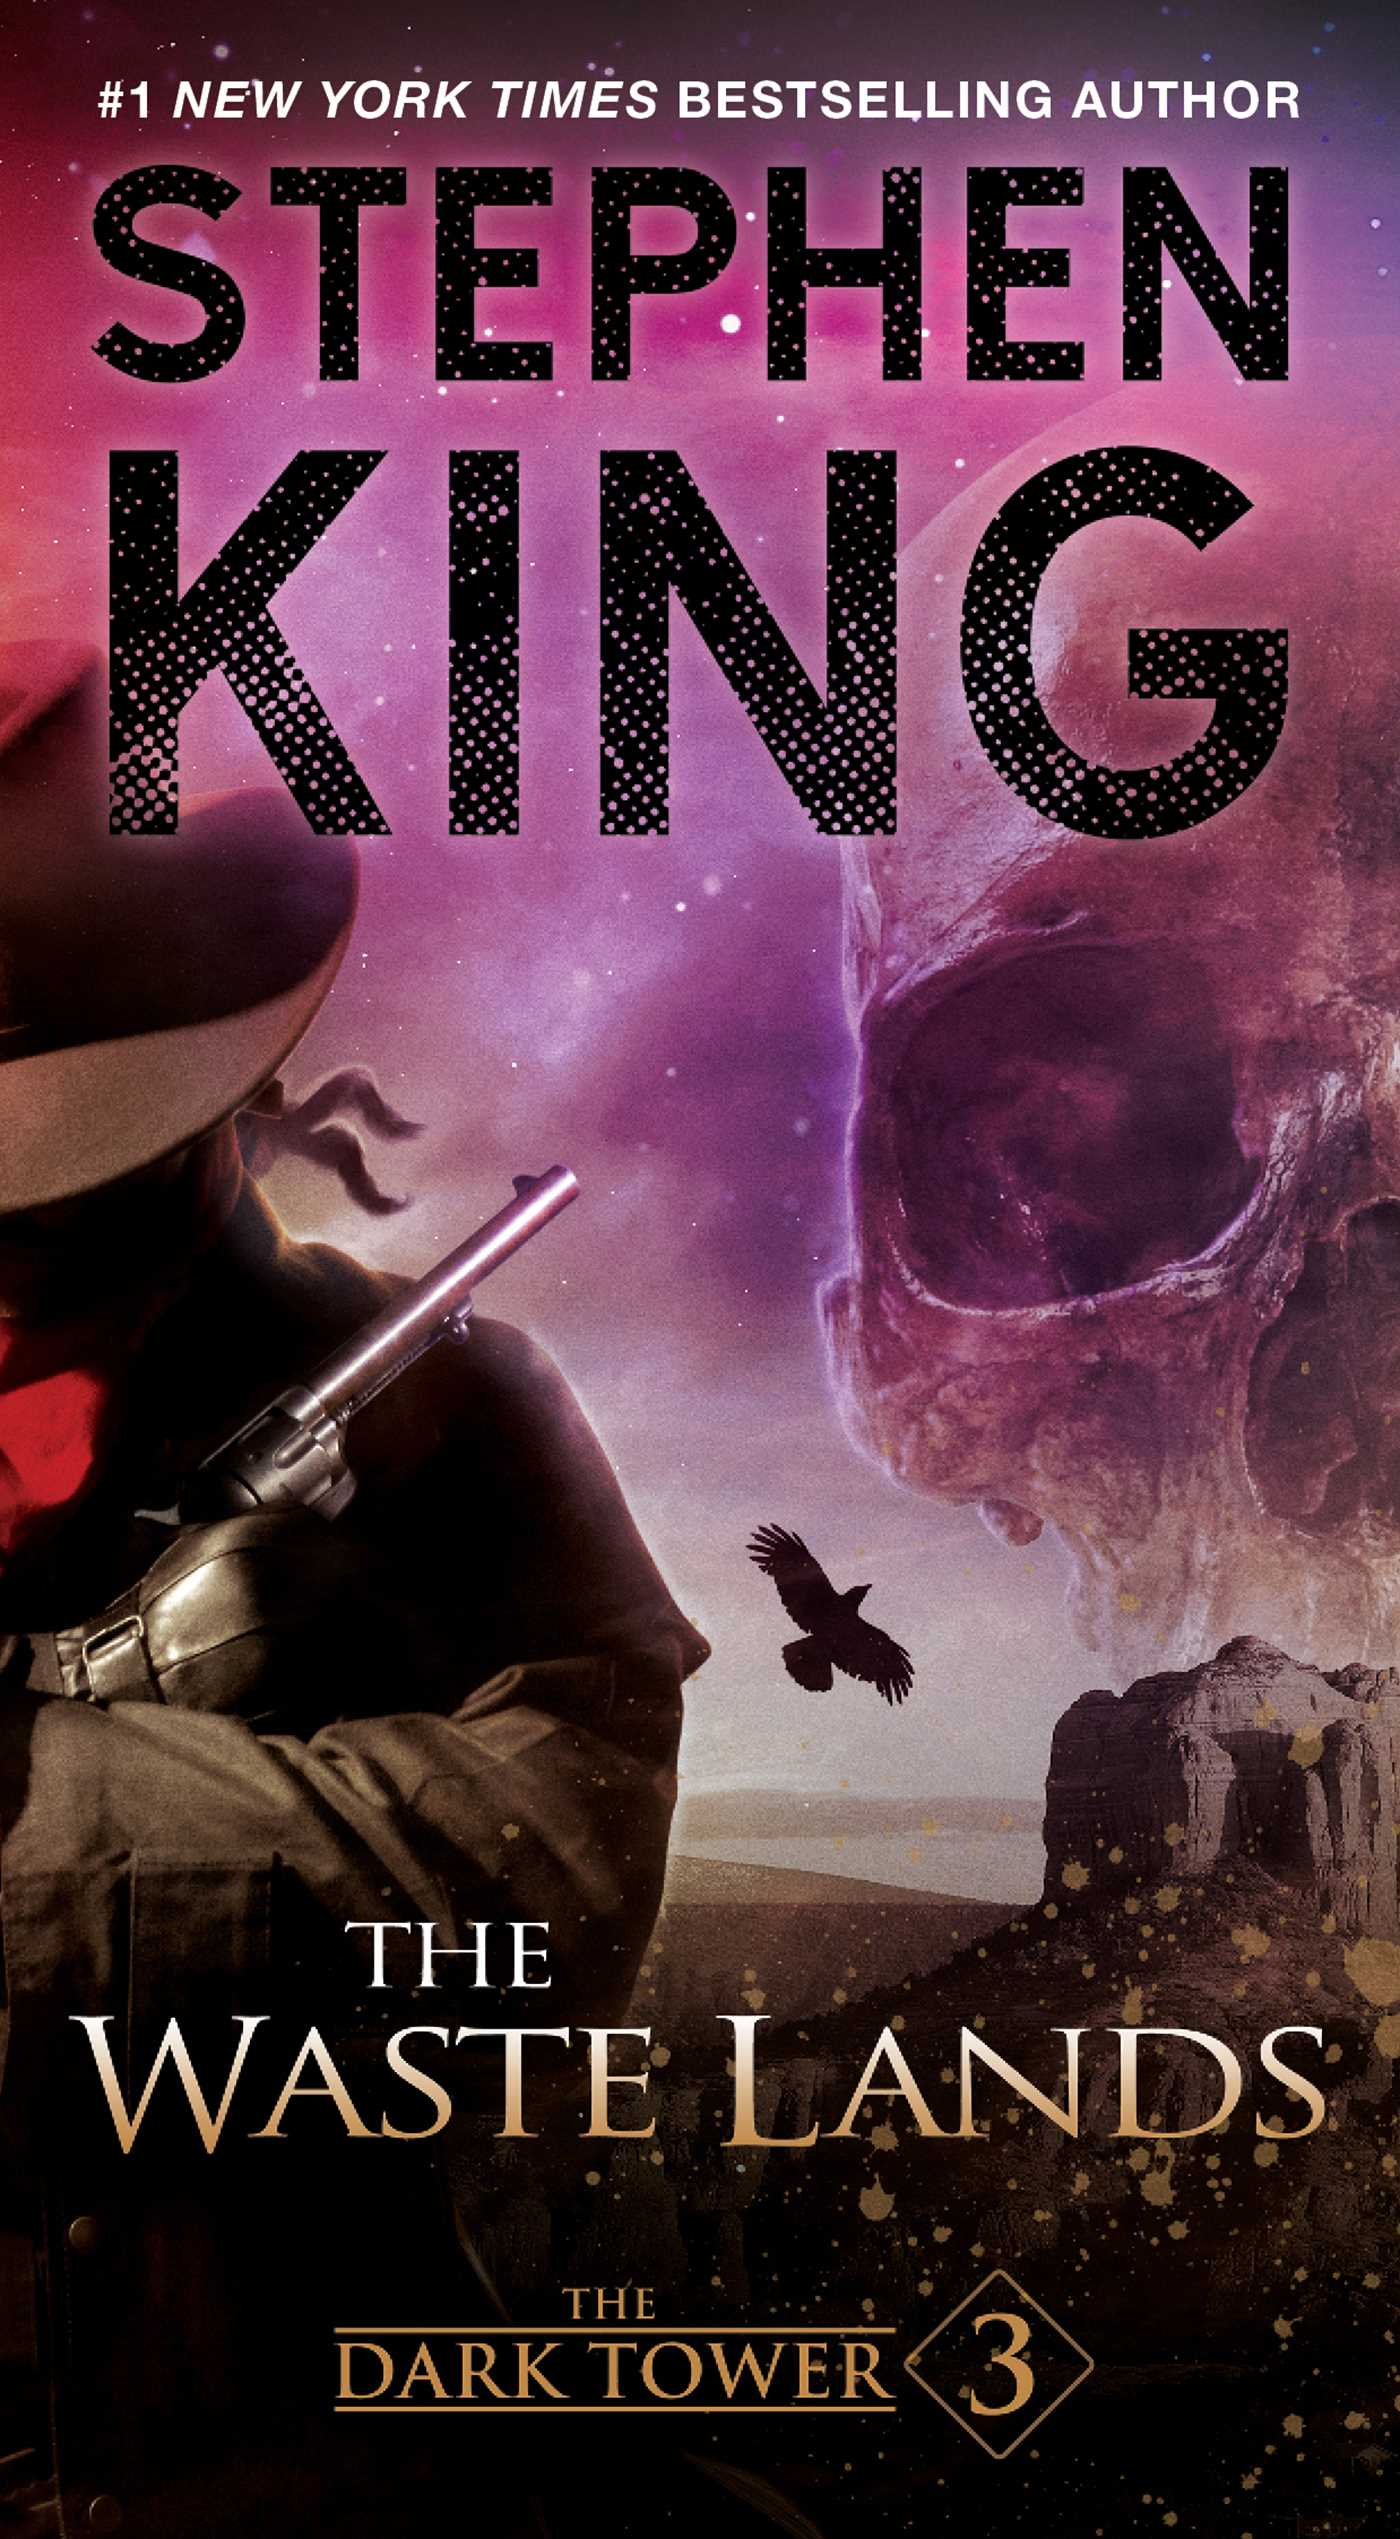 The dark tower iii 9781501161827 hr